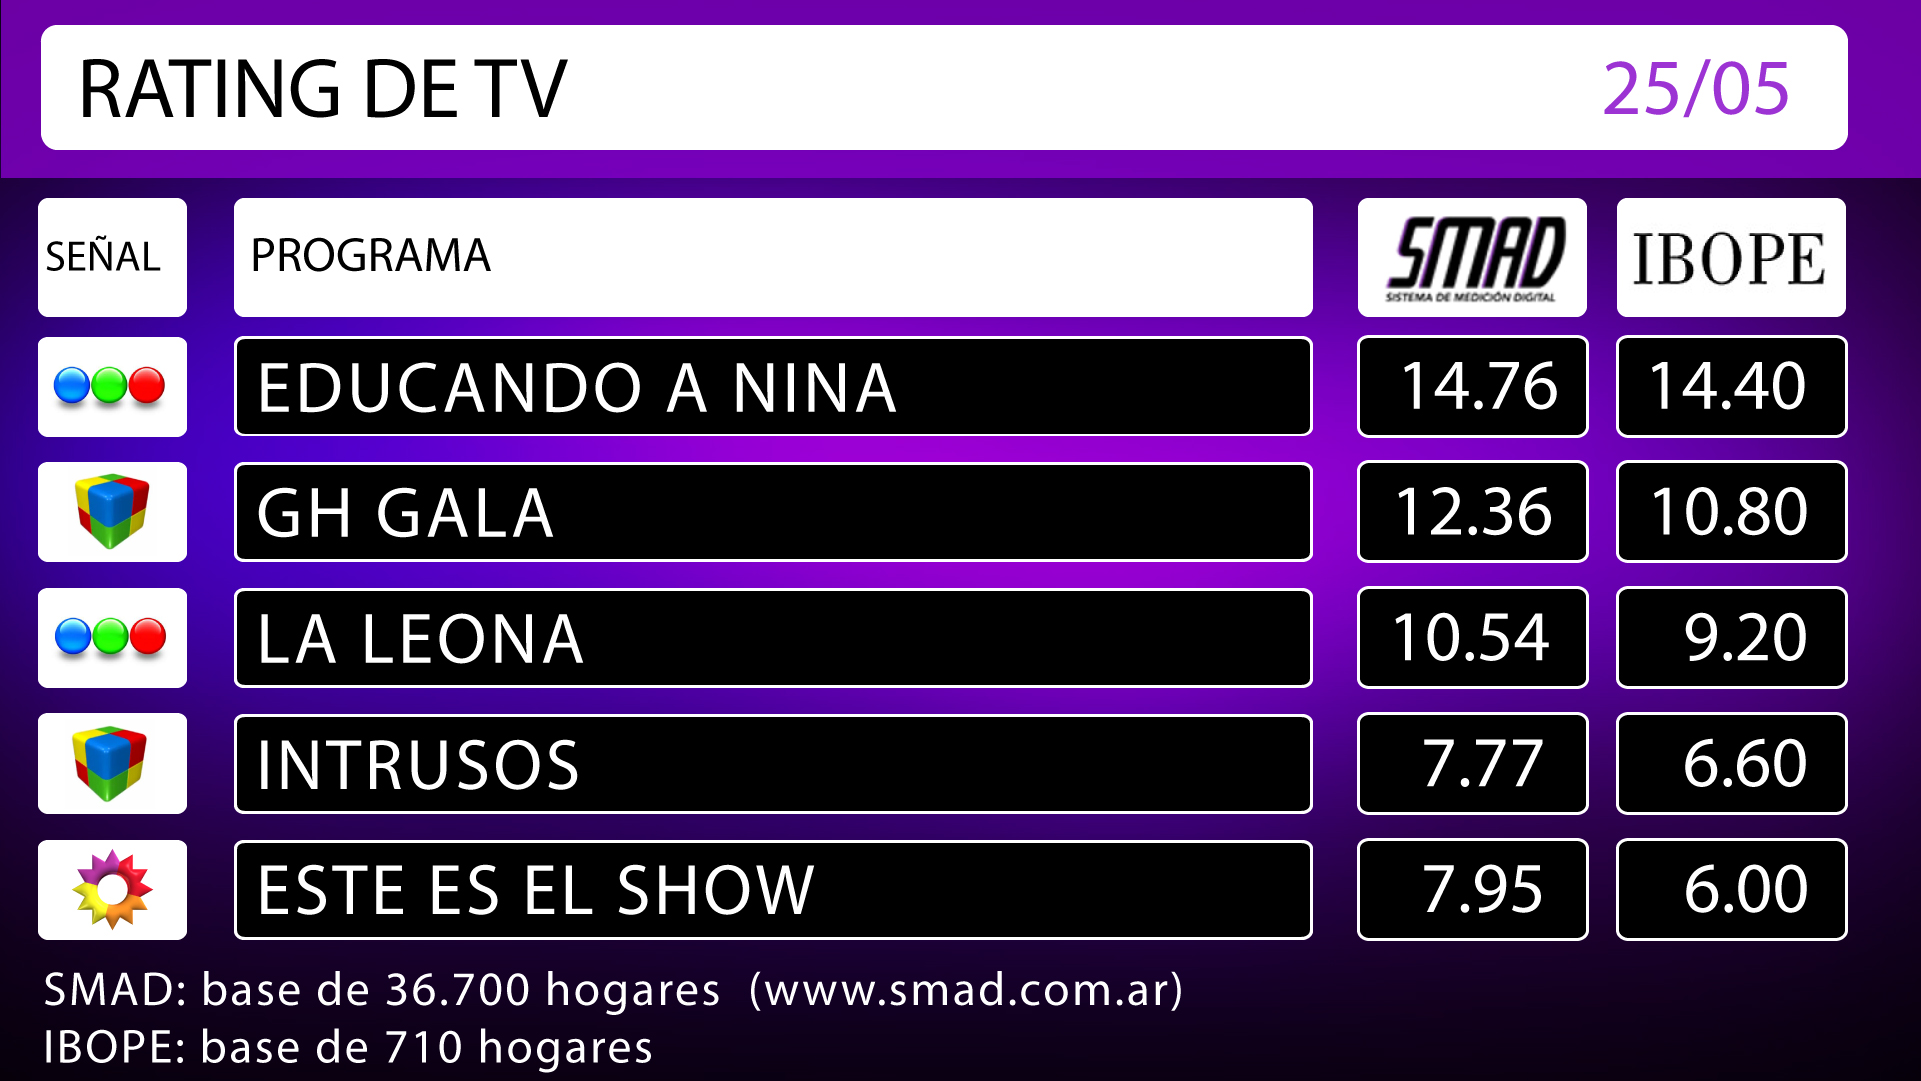 RATING DE TV: mi�rcoles 25 de mayo de 2016